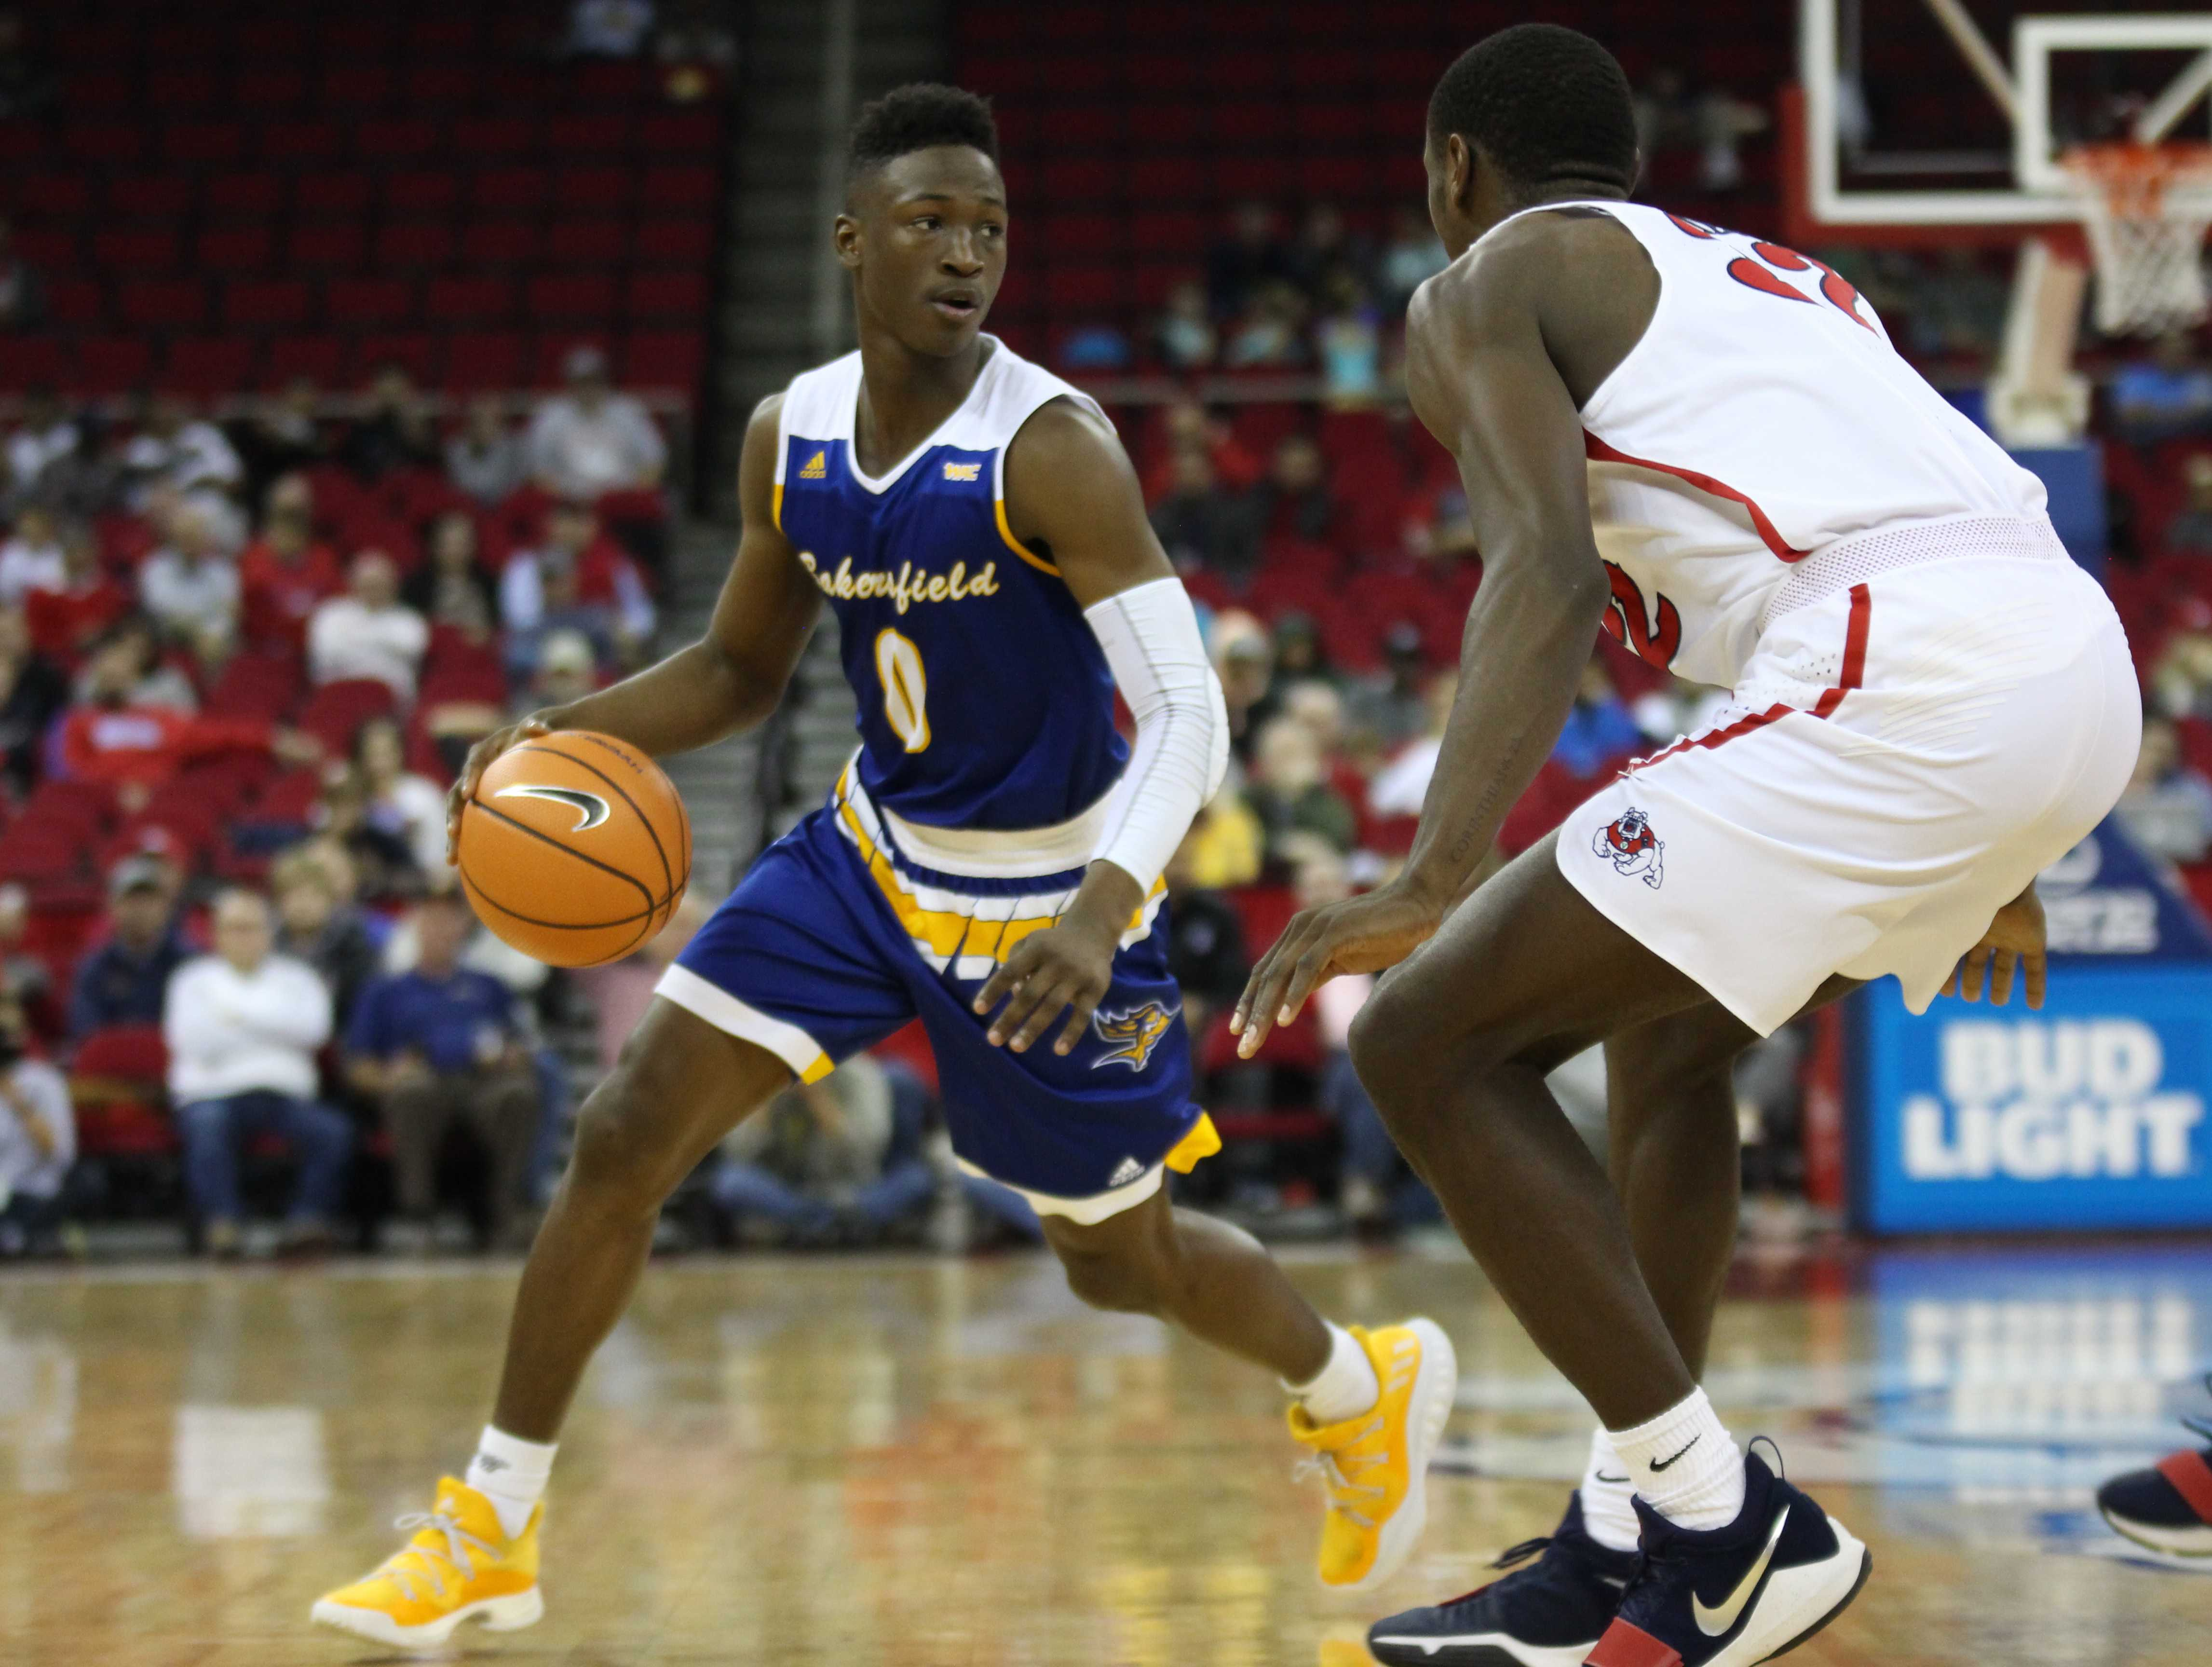 Roadrunners' offense stalls, drop fourth straight